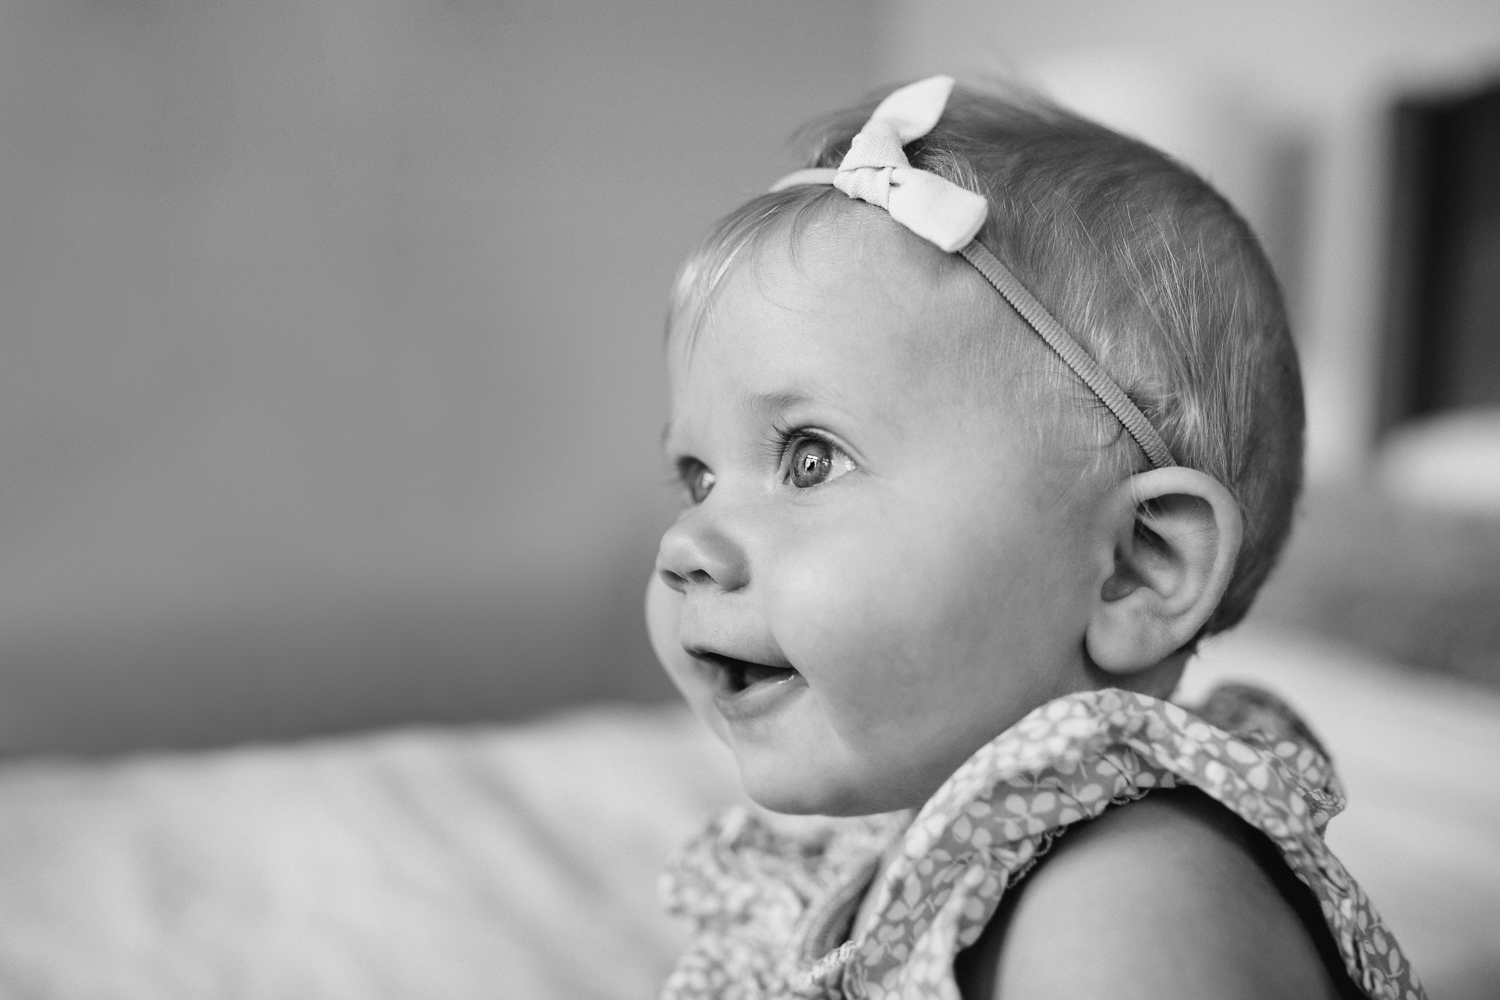 6 month old baby girl with blonde hair and blue eyes sitting on bed - Newmarket In-home Family Photos